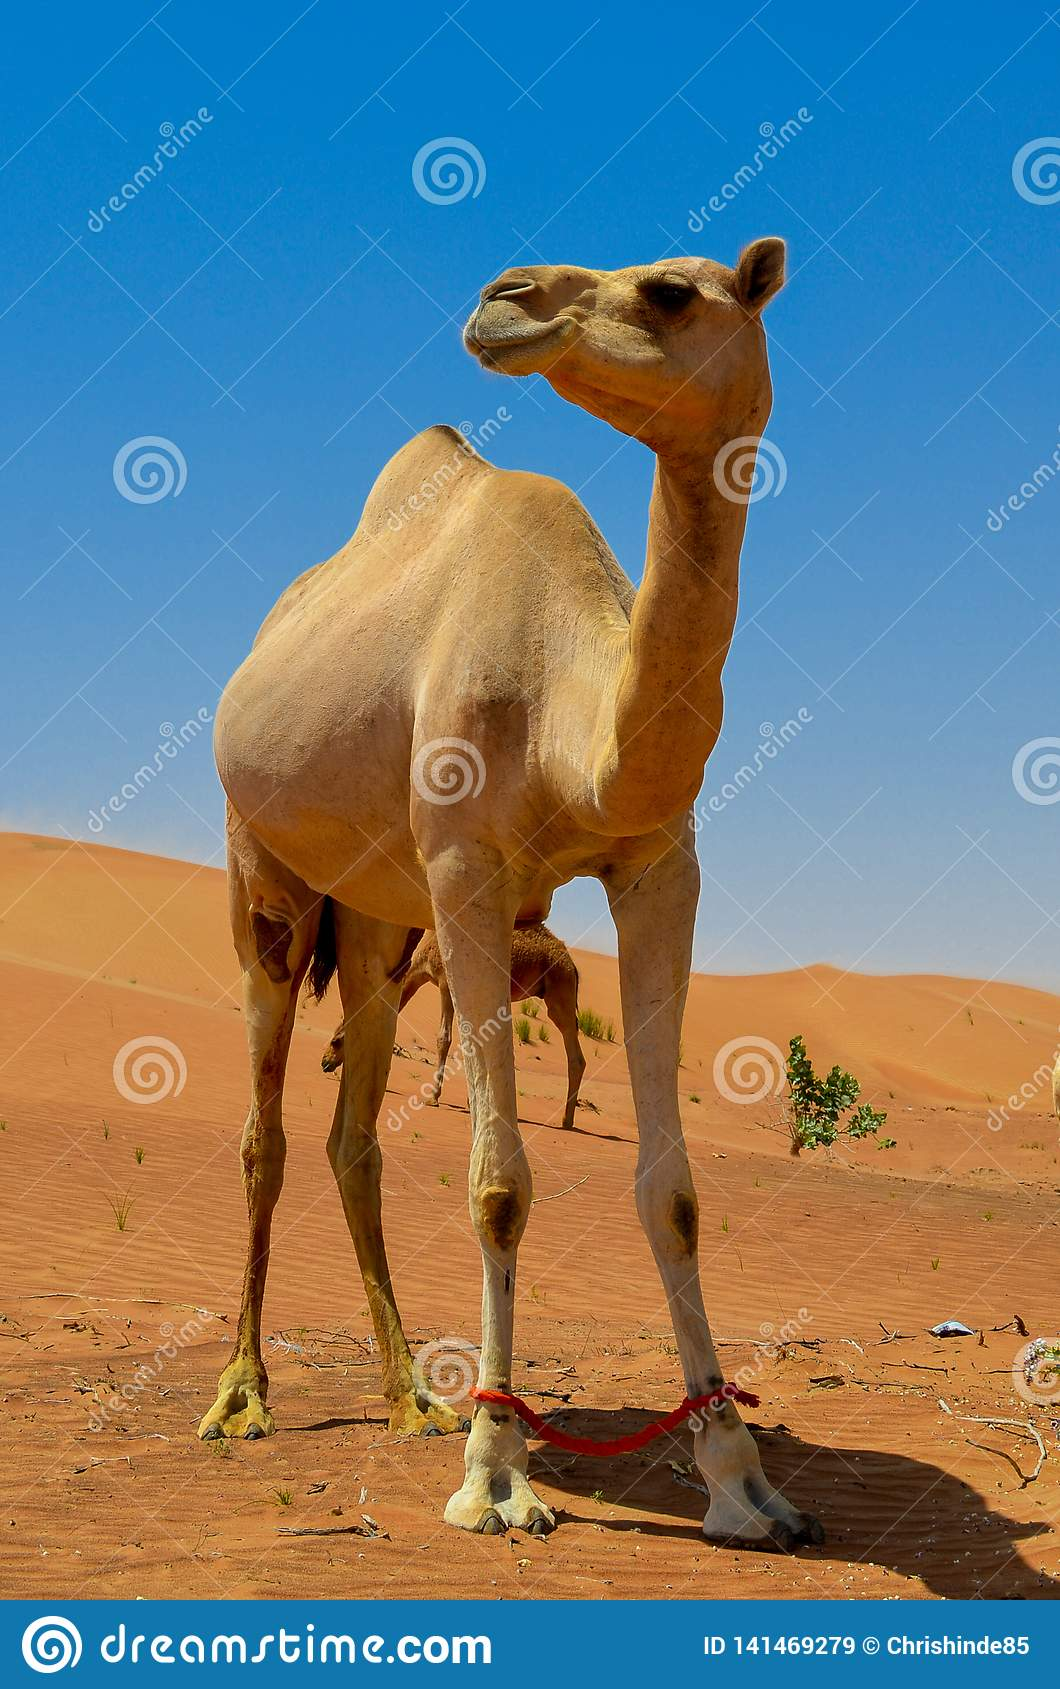 Middle East Camel